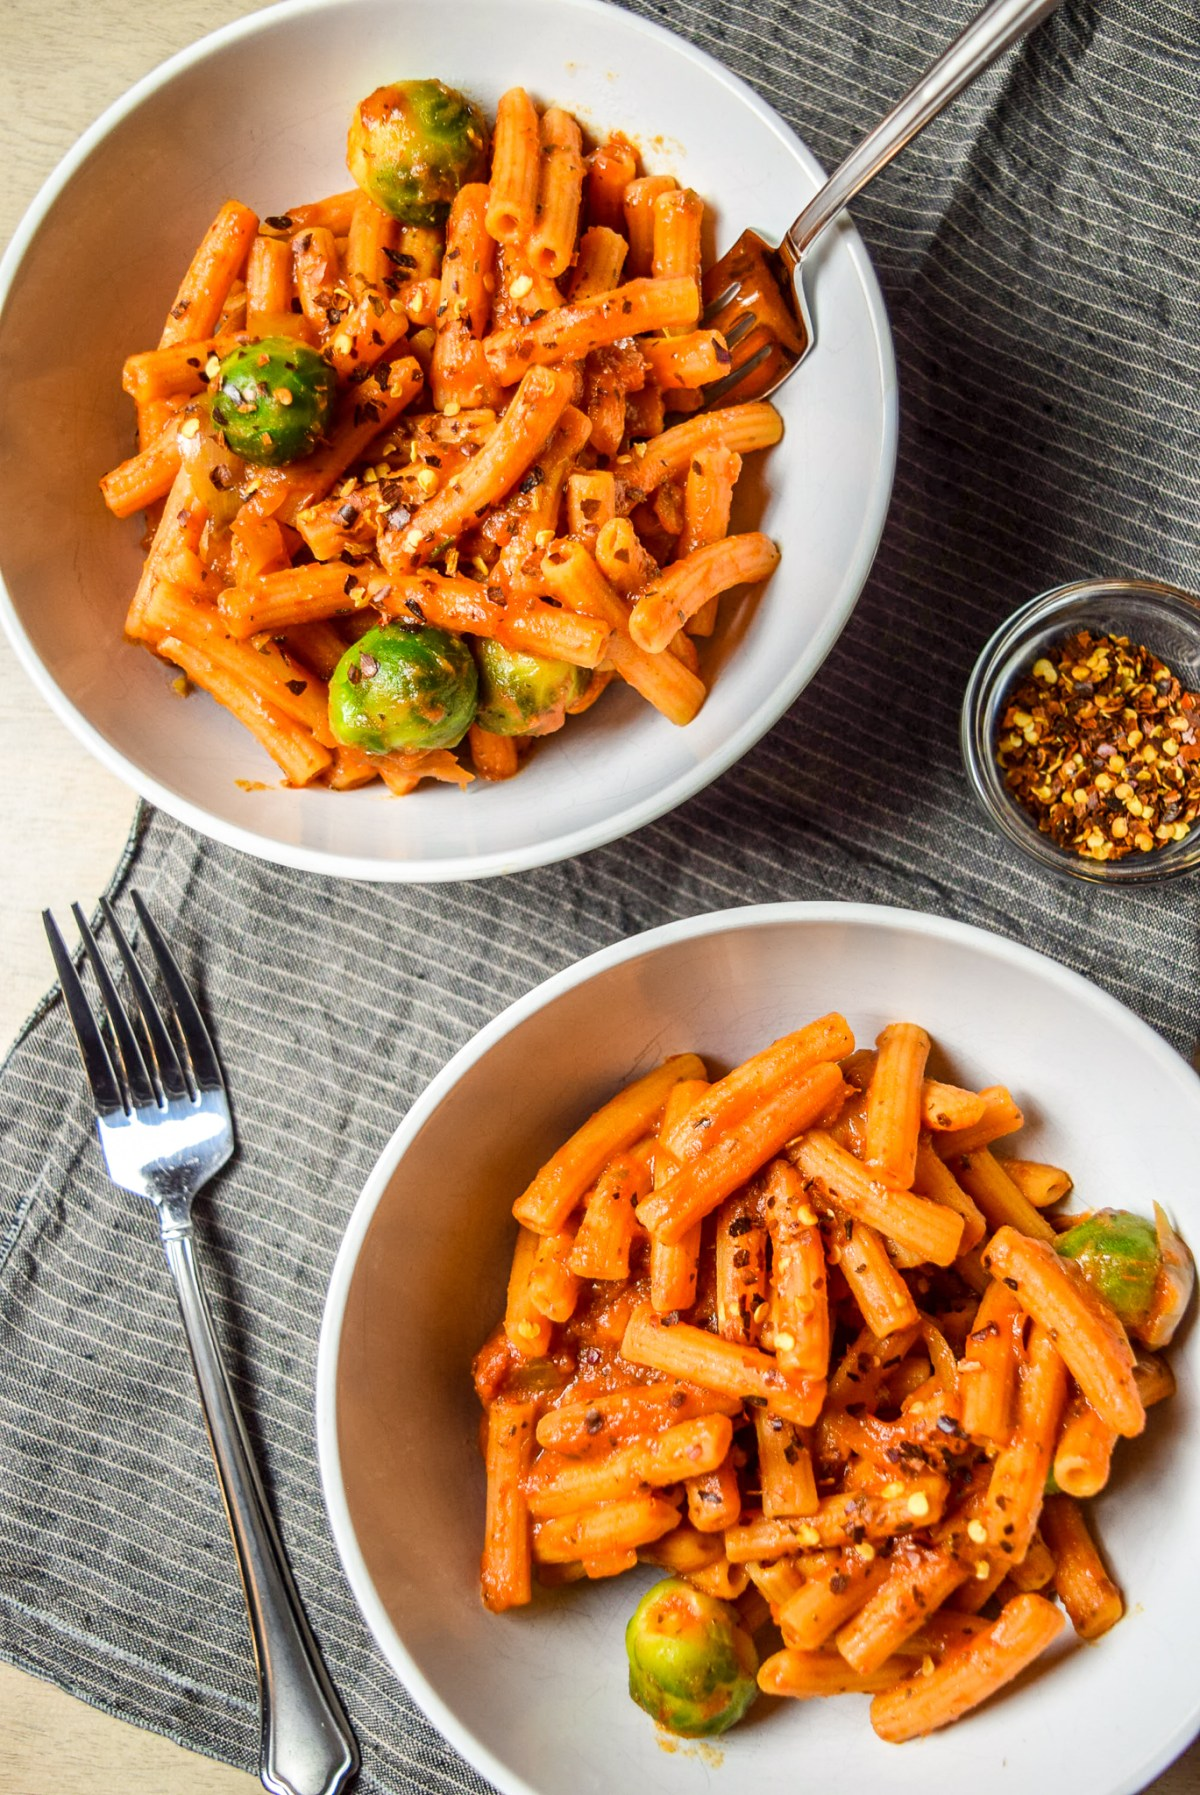 Finished Protein-Packed Red Lentil Pasta with Marinara, Brussel Sprouts, and Caramelized Onions in two bowls with forks, napkin, and chili pepper flakes from top